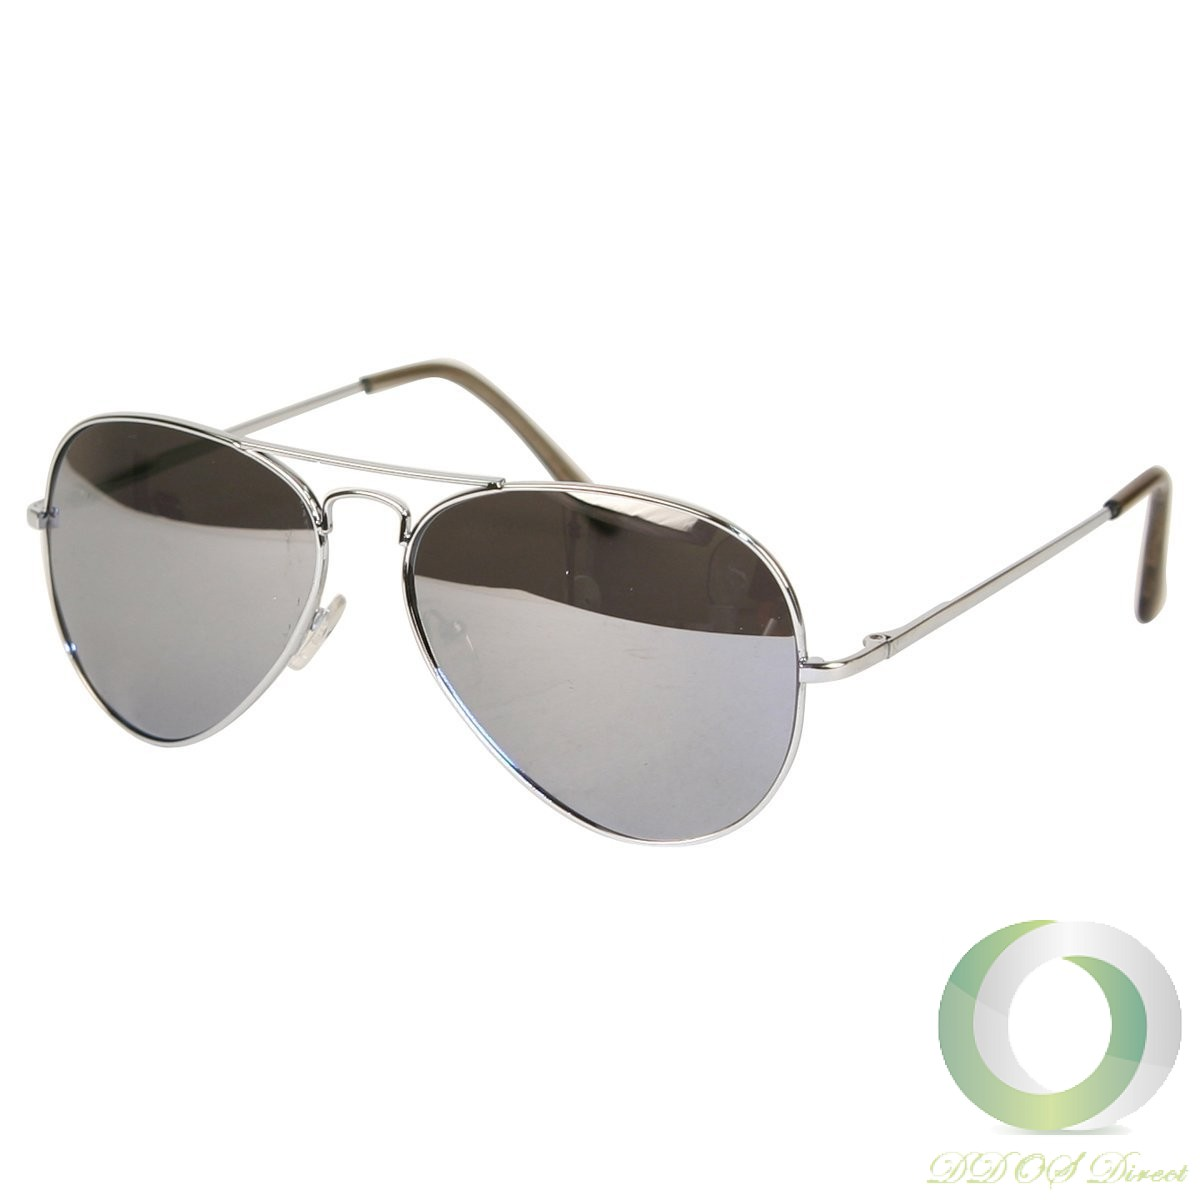 Polarized Aviators Sunglasses. Showing 48 of results that match your query. Search Product Result. Product - Polarized Aviator Sunglasses for Women, Pink Mirrored Lens, Gold Metal Frame, 58mm. Product Image. Price $ 16 - $ Product Title.